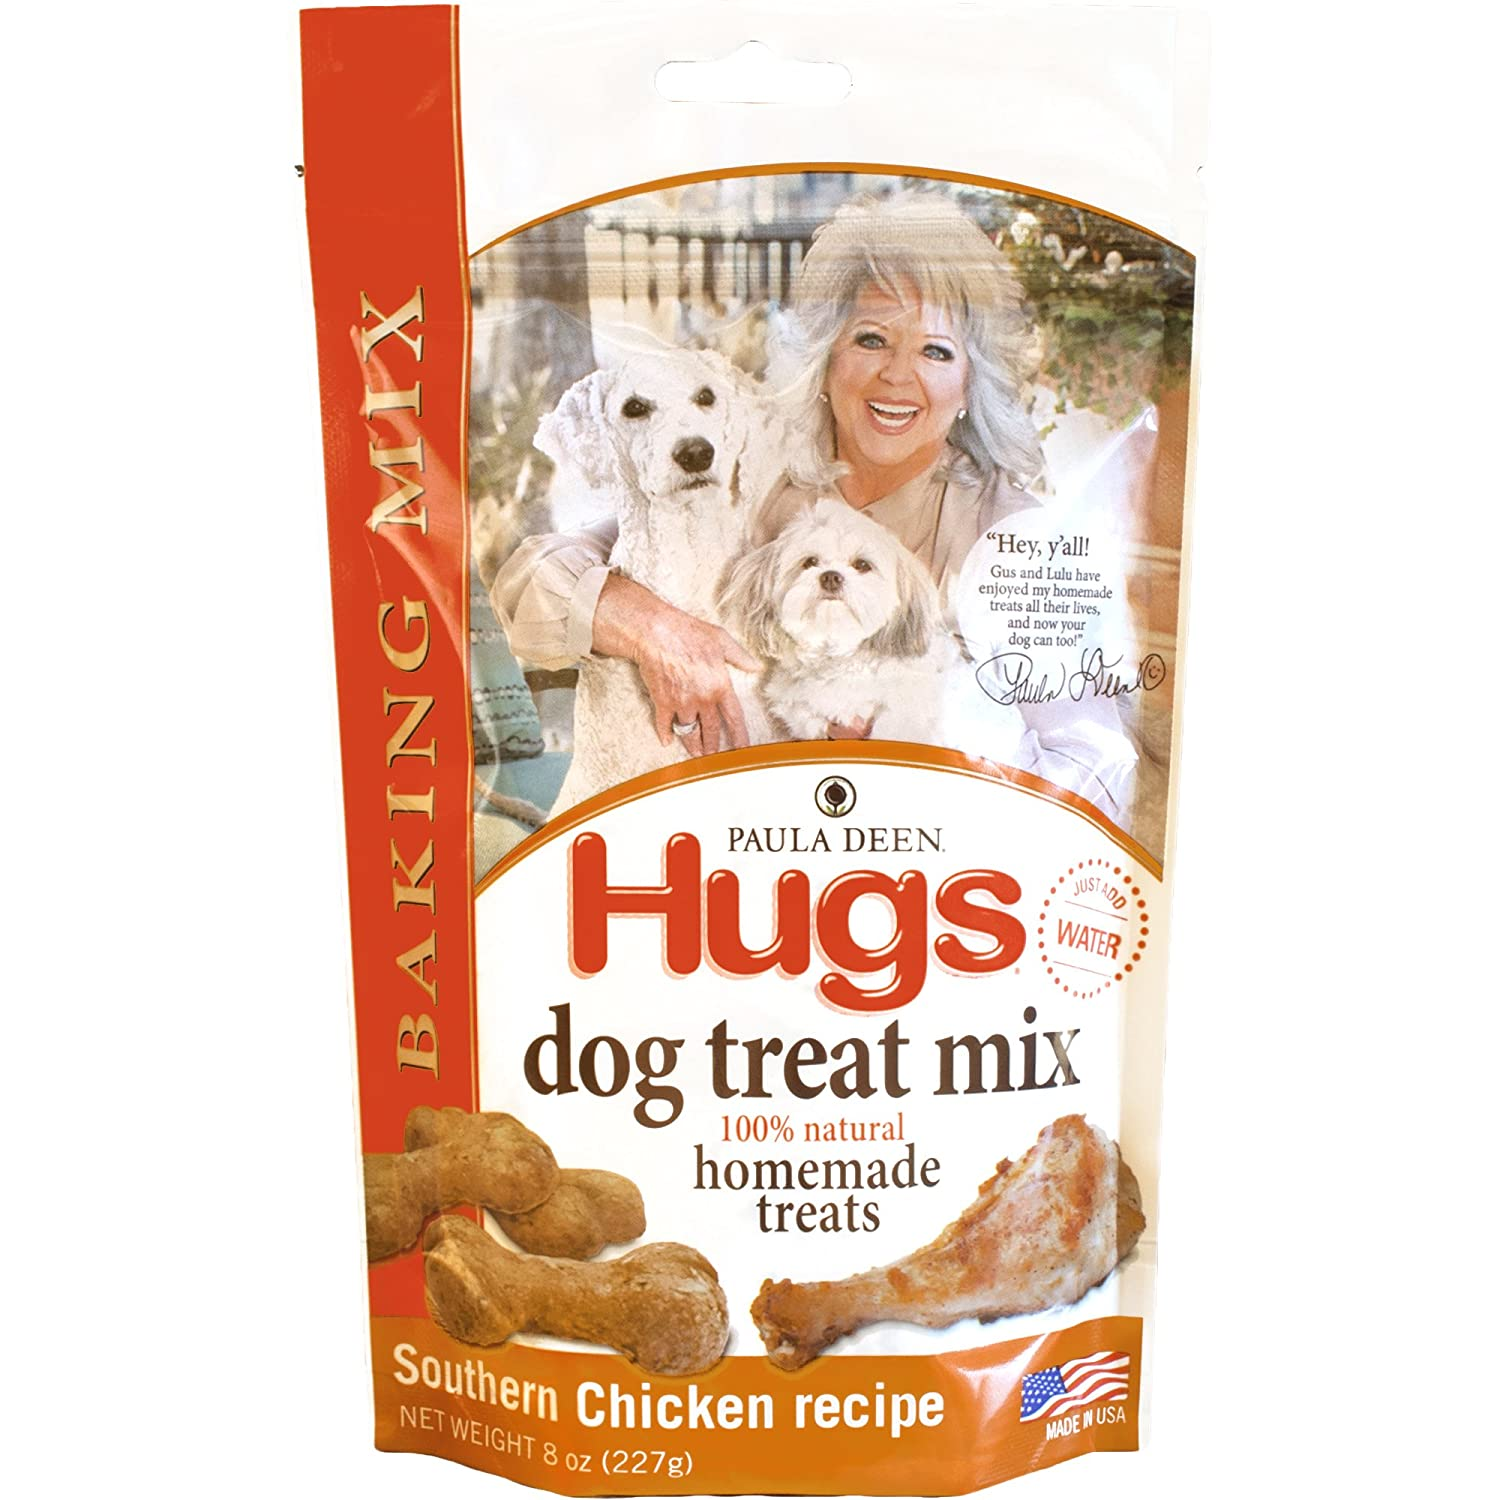 Paula Deen Dog Treat Mix